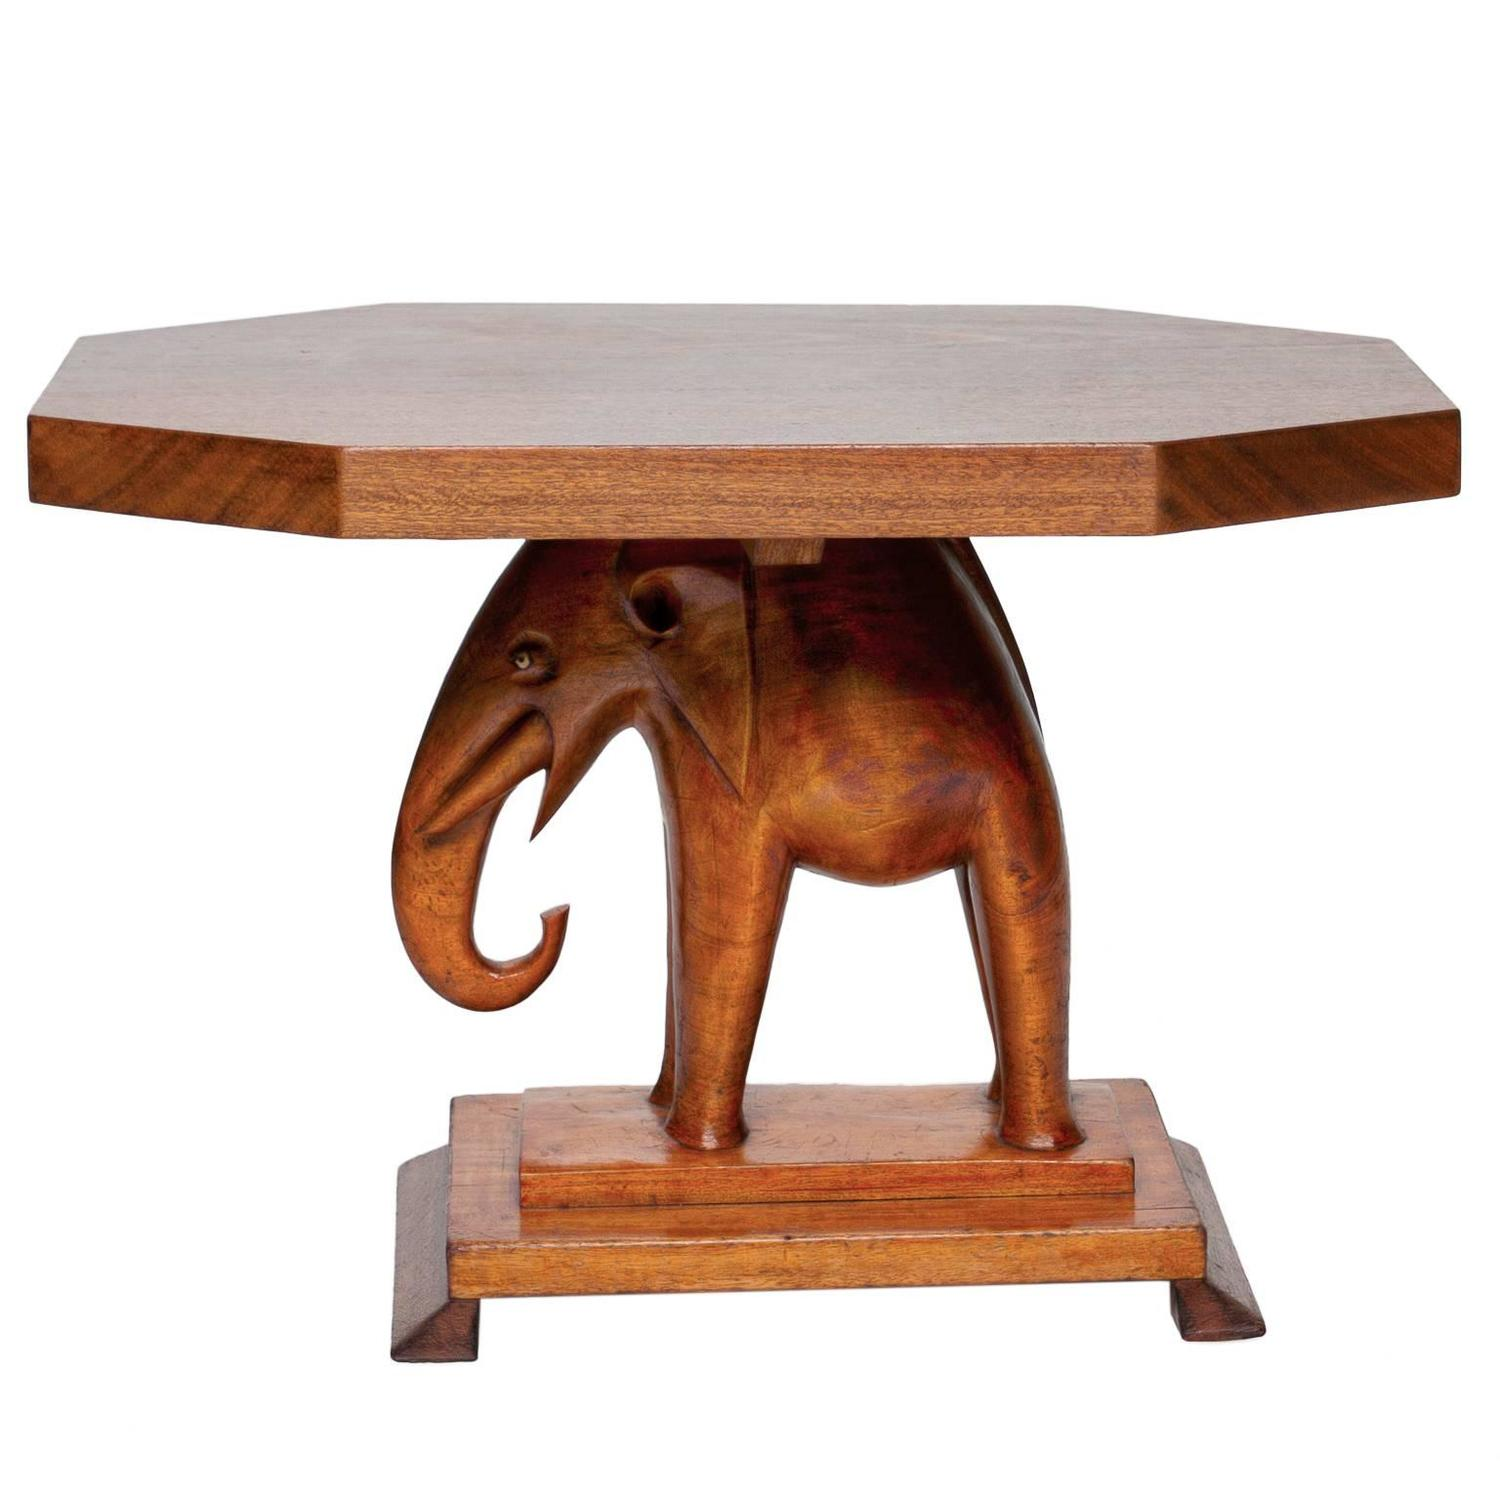 20th Century Ashanti Carved Table and Elephant Base at 1stdibs